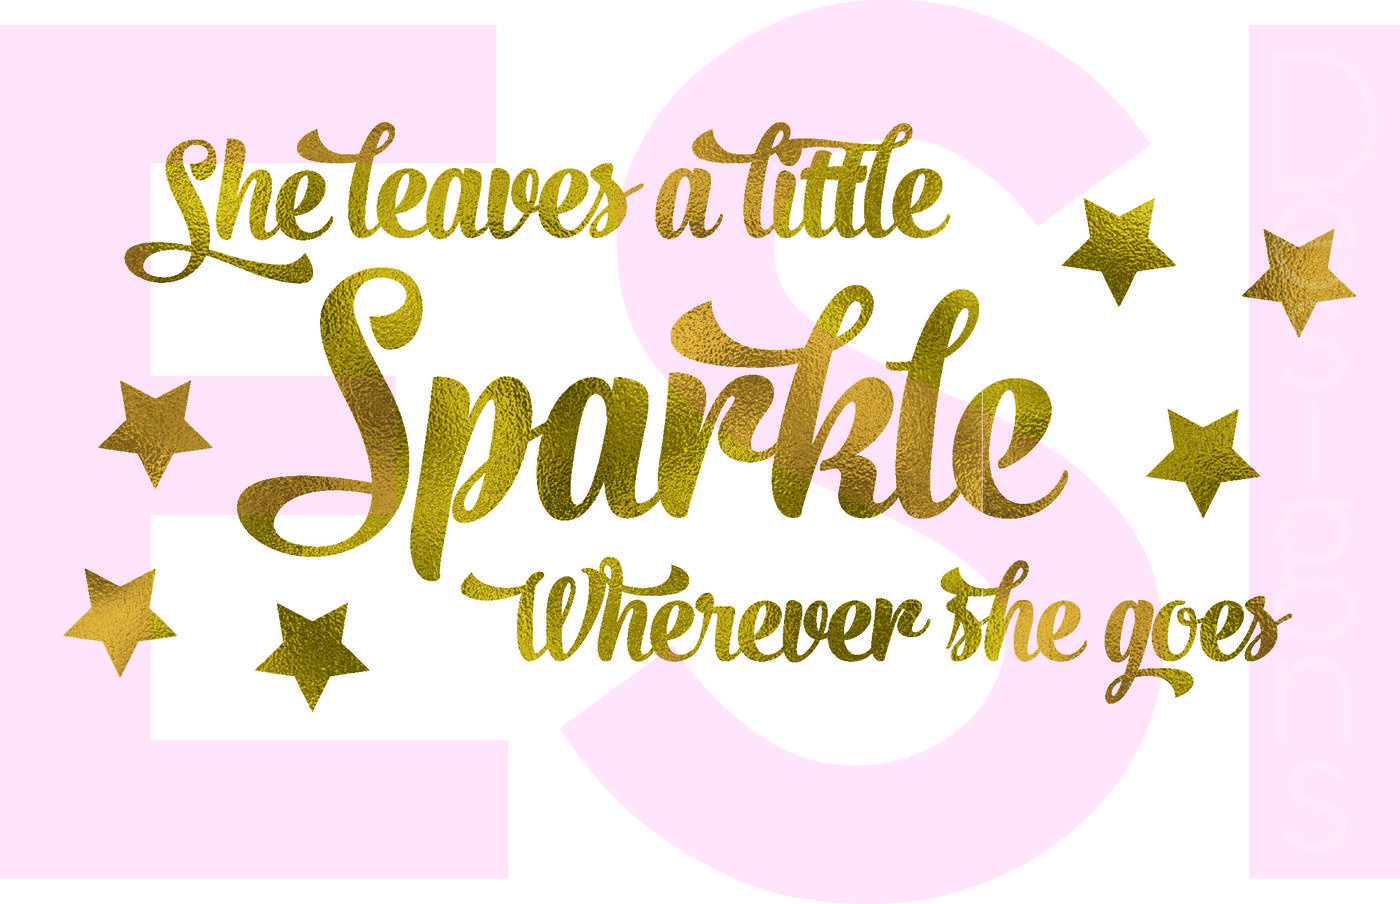 She Leaves A Little Sparkle Wherever She Goes Quote Svg Dxf Eps Cutting Files By Esi Designs Thehungryjpeg Com